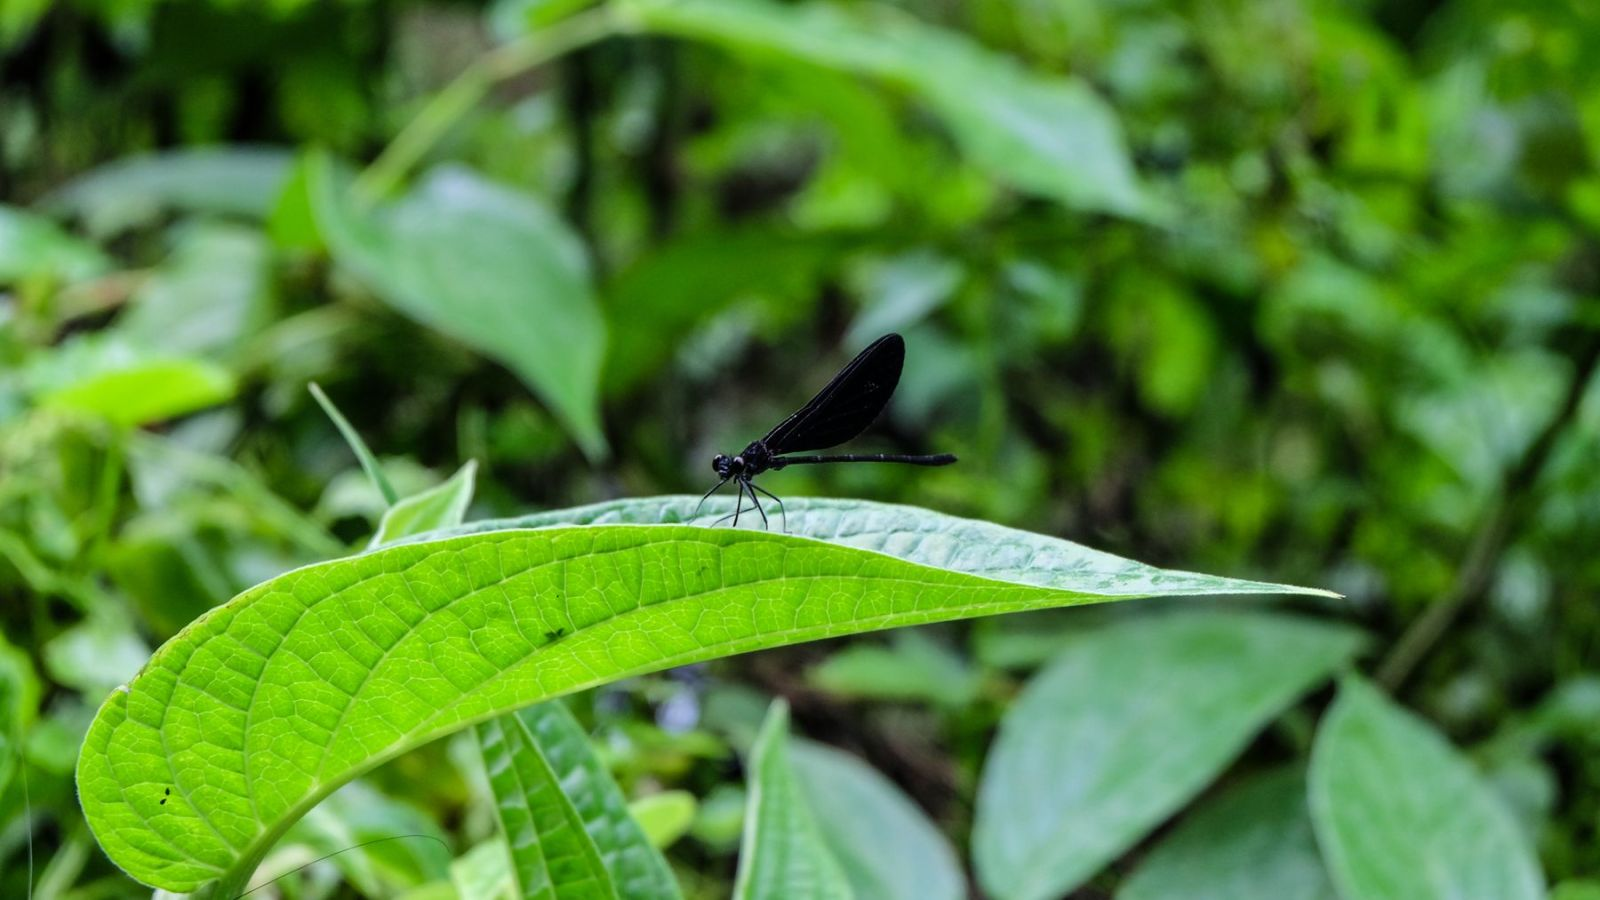 a photo of a dragonfly in gunung leuser national park.